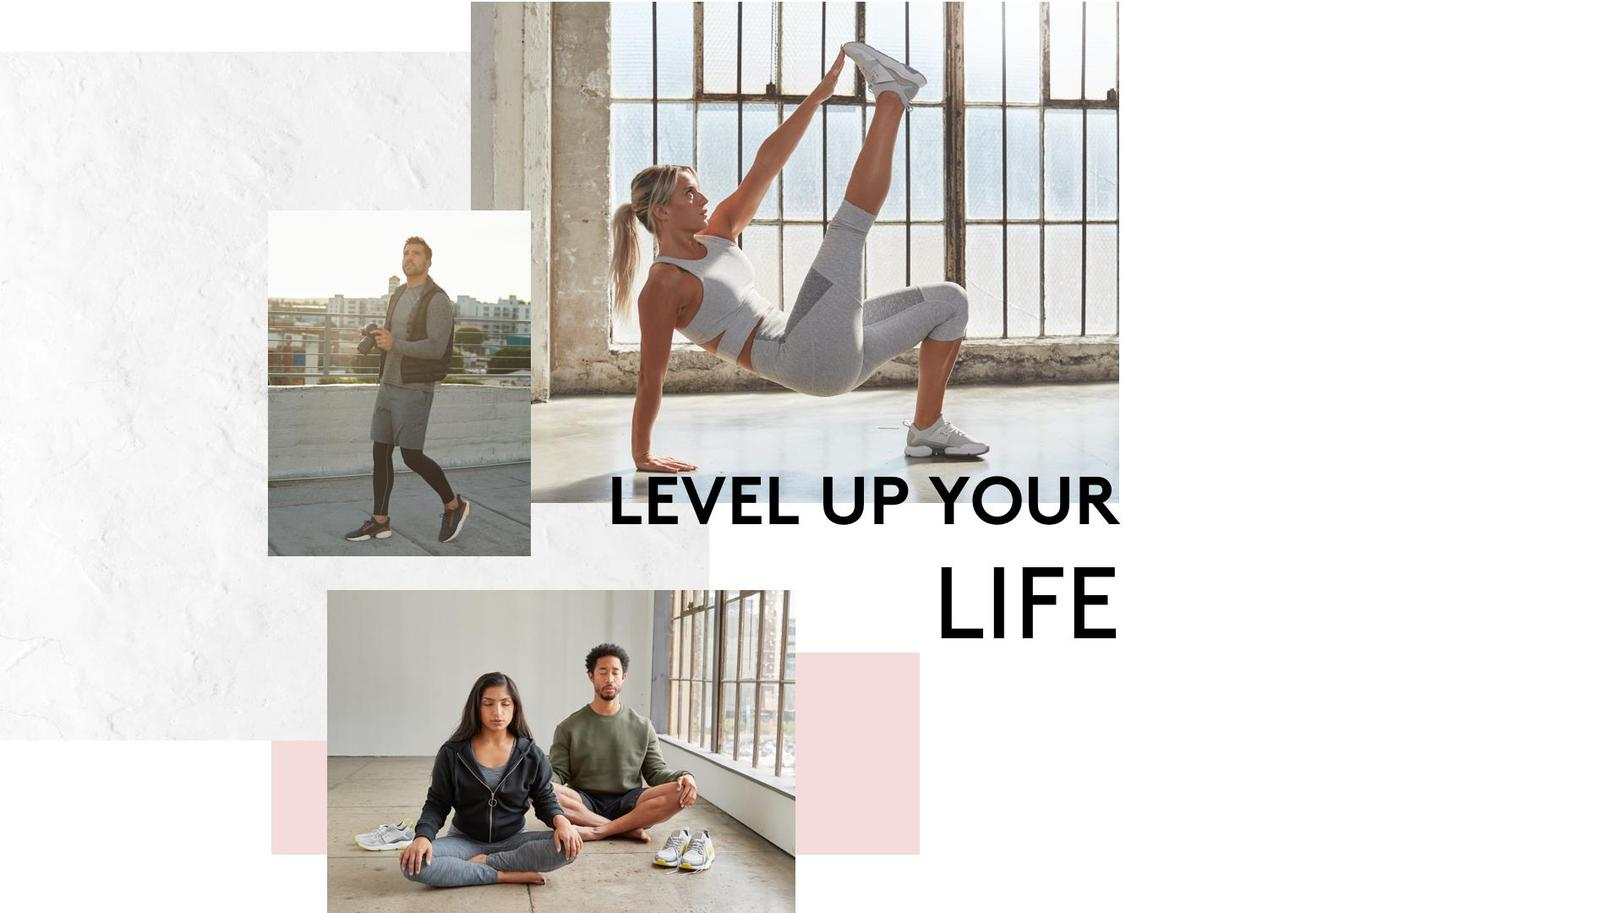 Level Up Your Life Sweepstakes